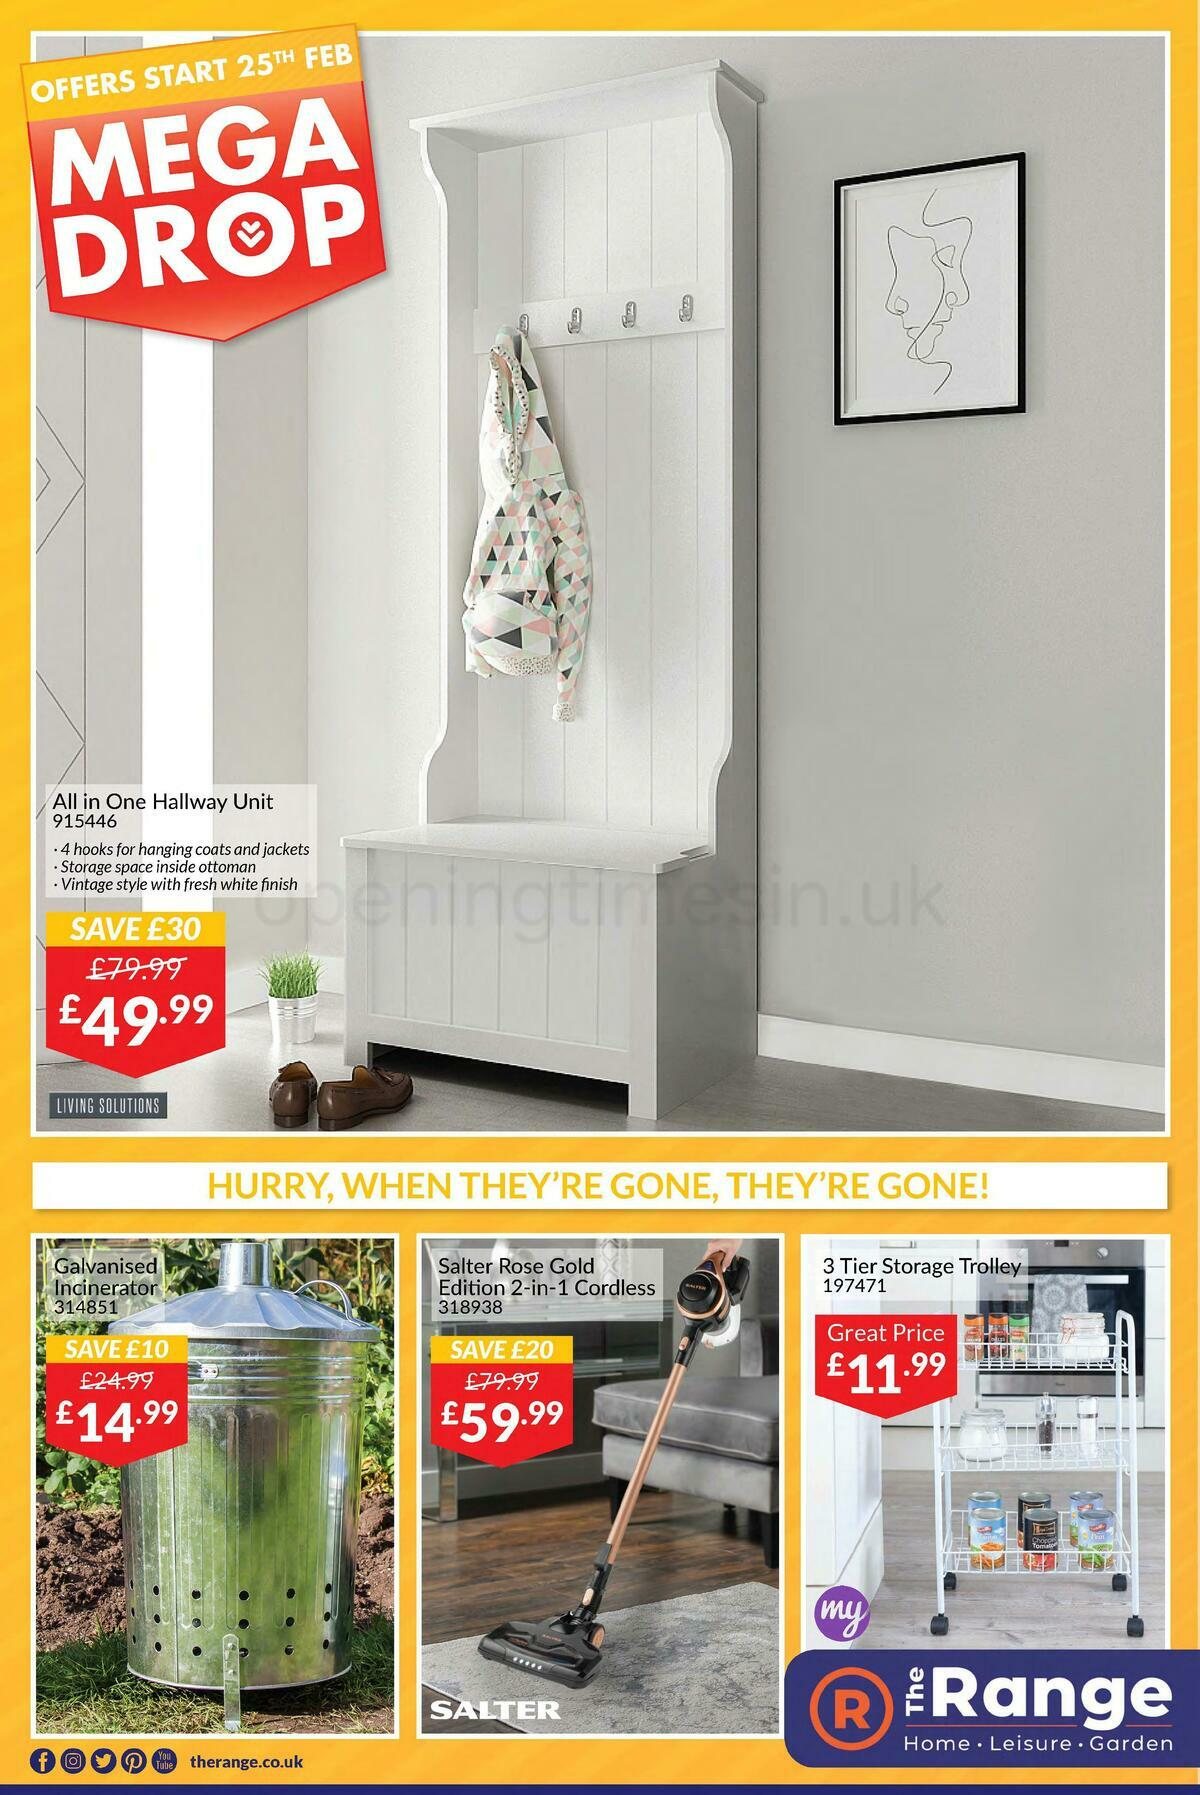 The Range Offers from February 25